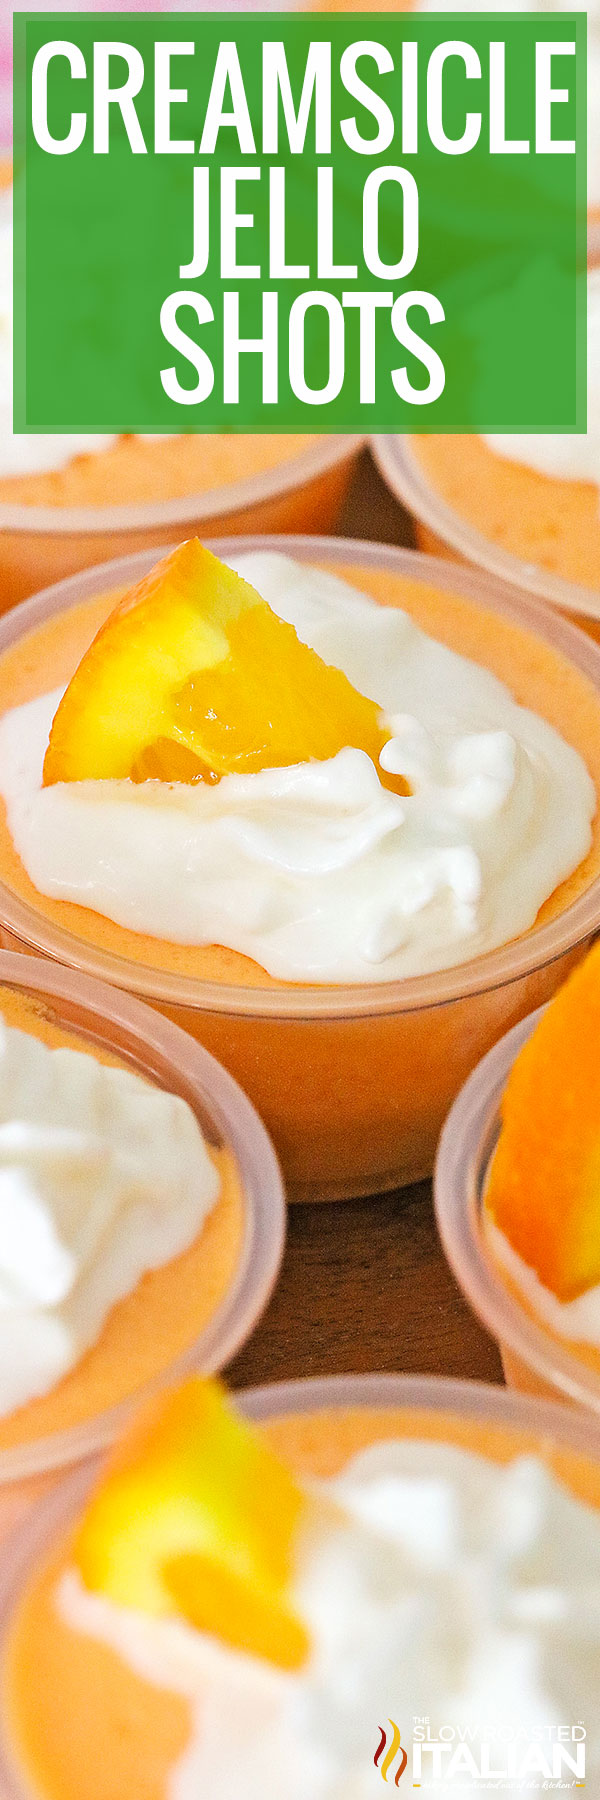 Creamsicle Jello Shots  whipped cream topping